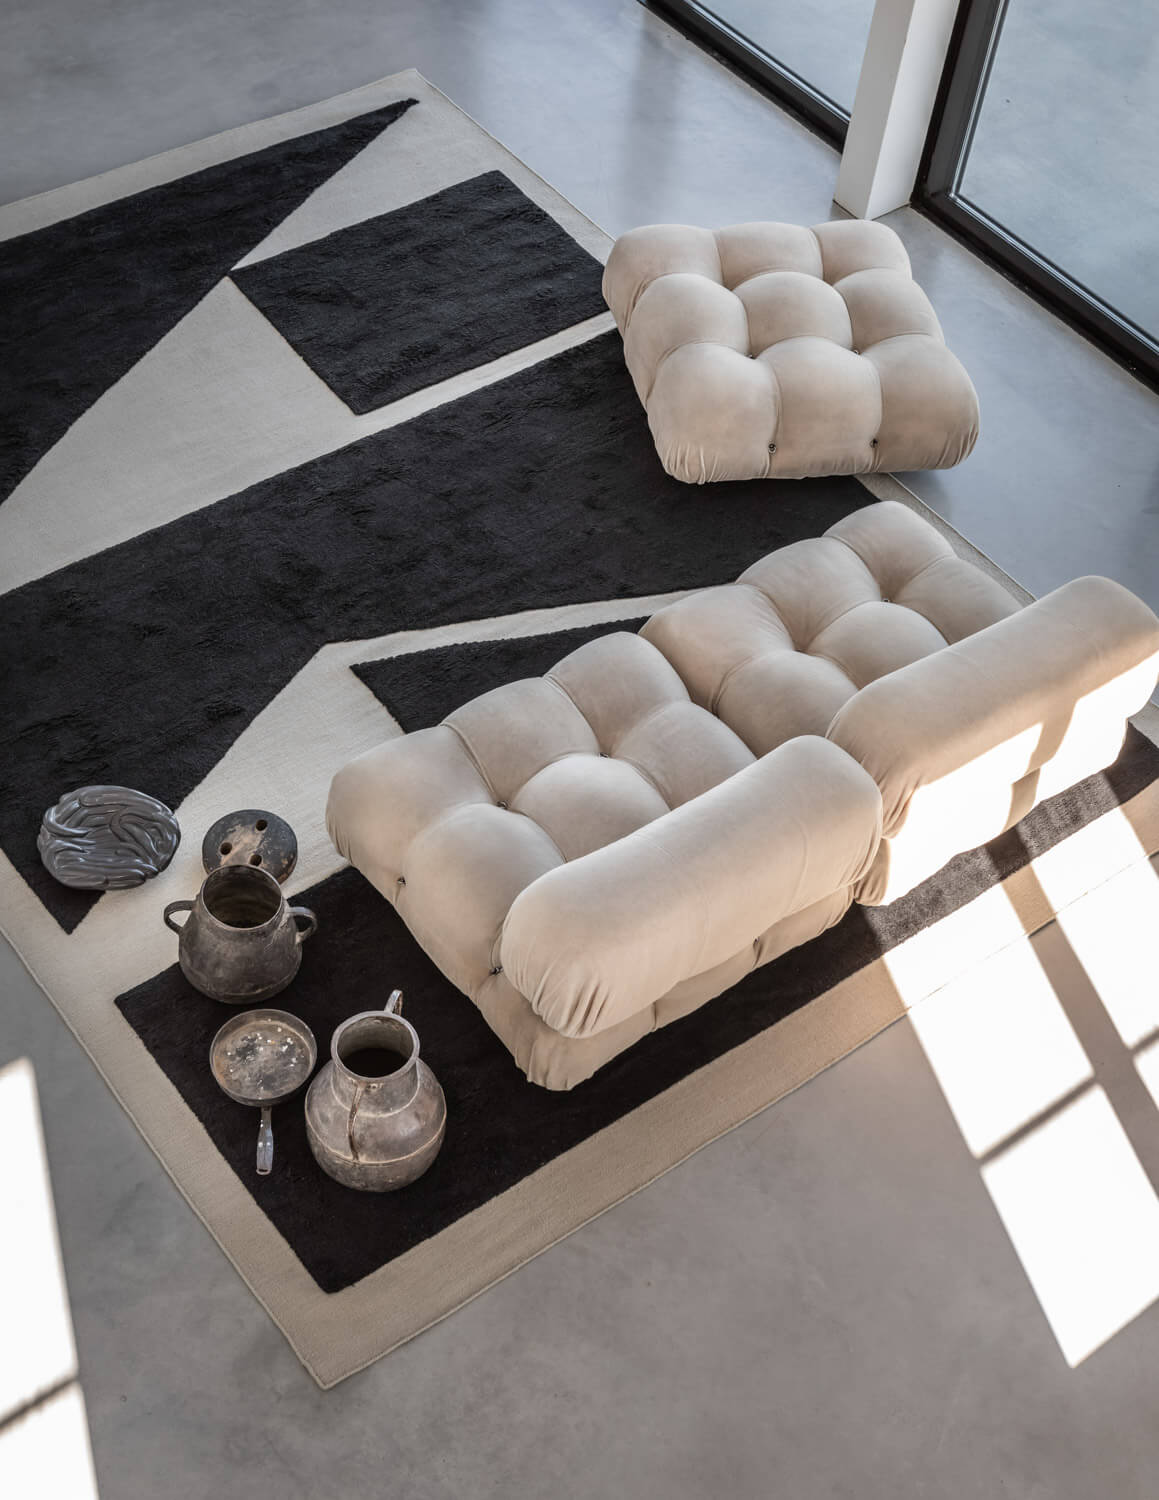 Untitled 1 in Dusty White and Black shown from above together with a beige sofa.